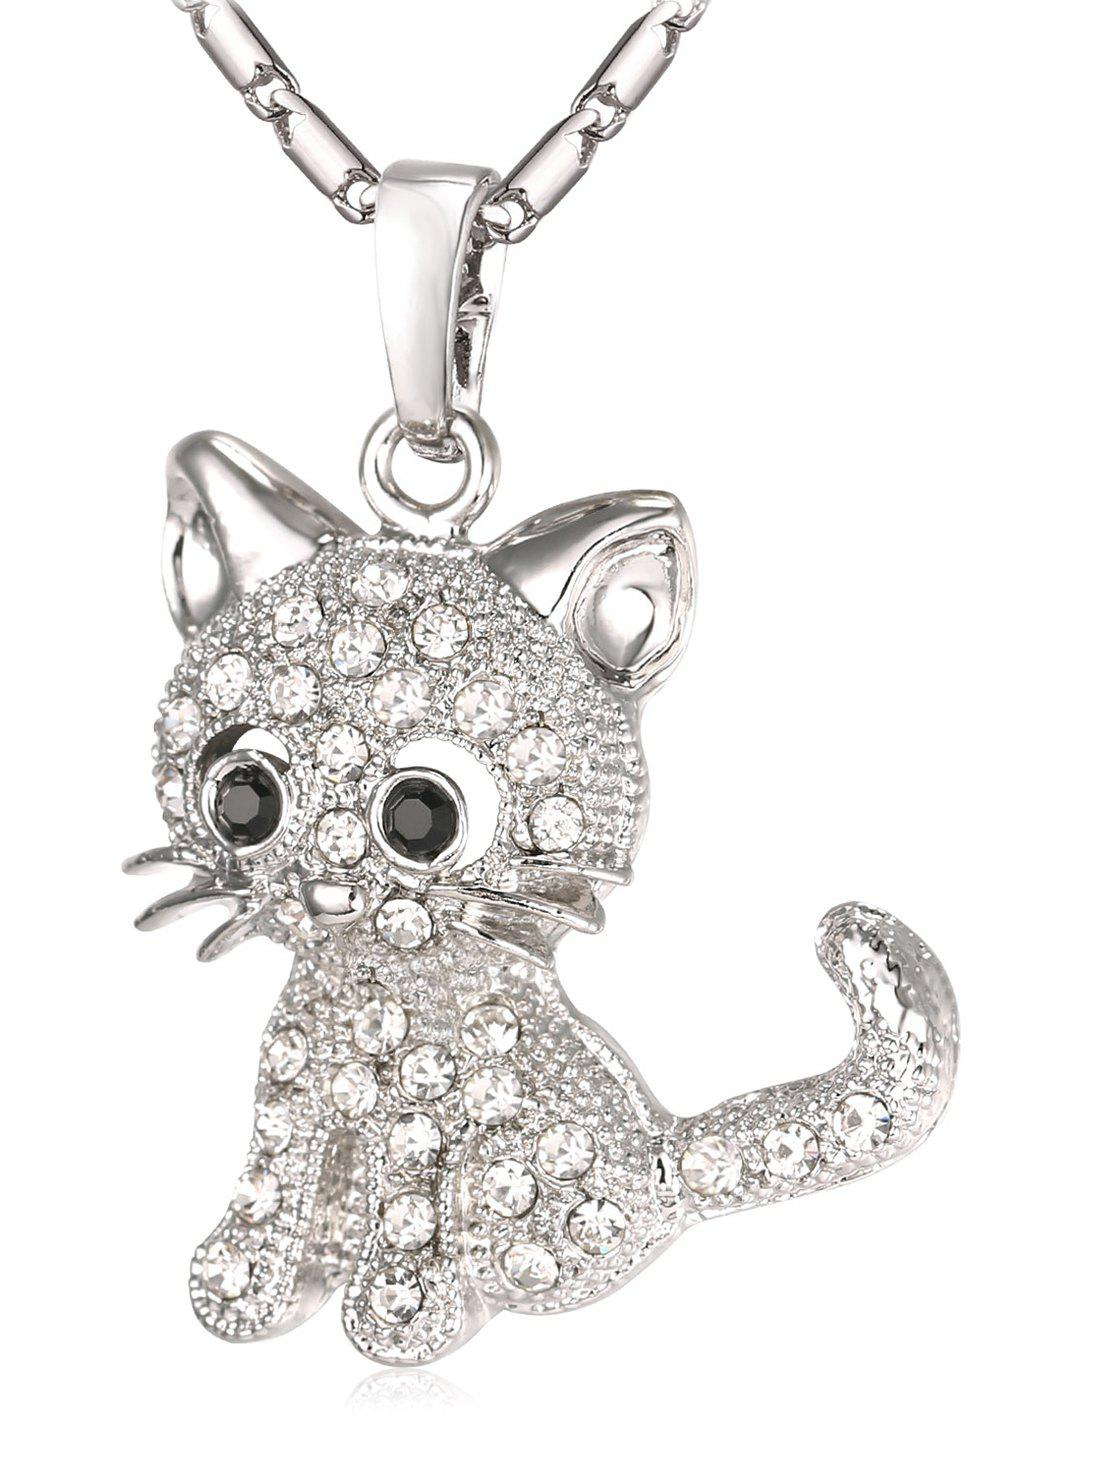 Online Cute Rhinestone Cat Pendant Chain Necklace